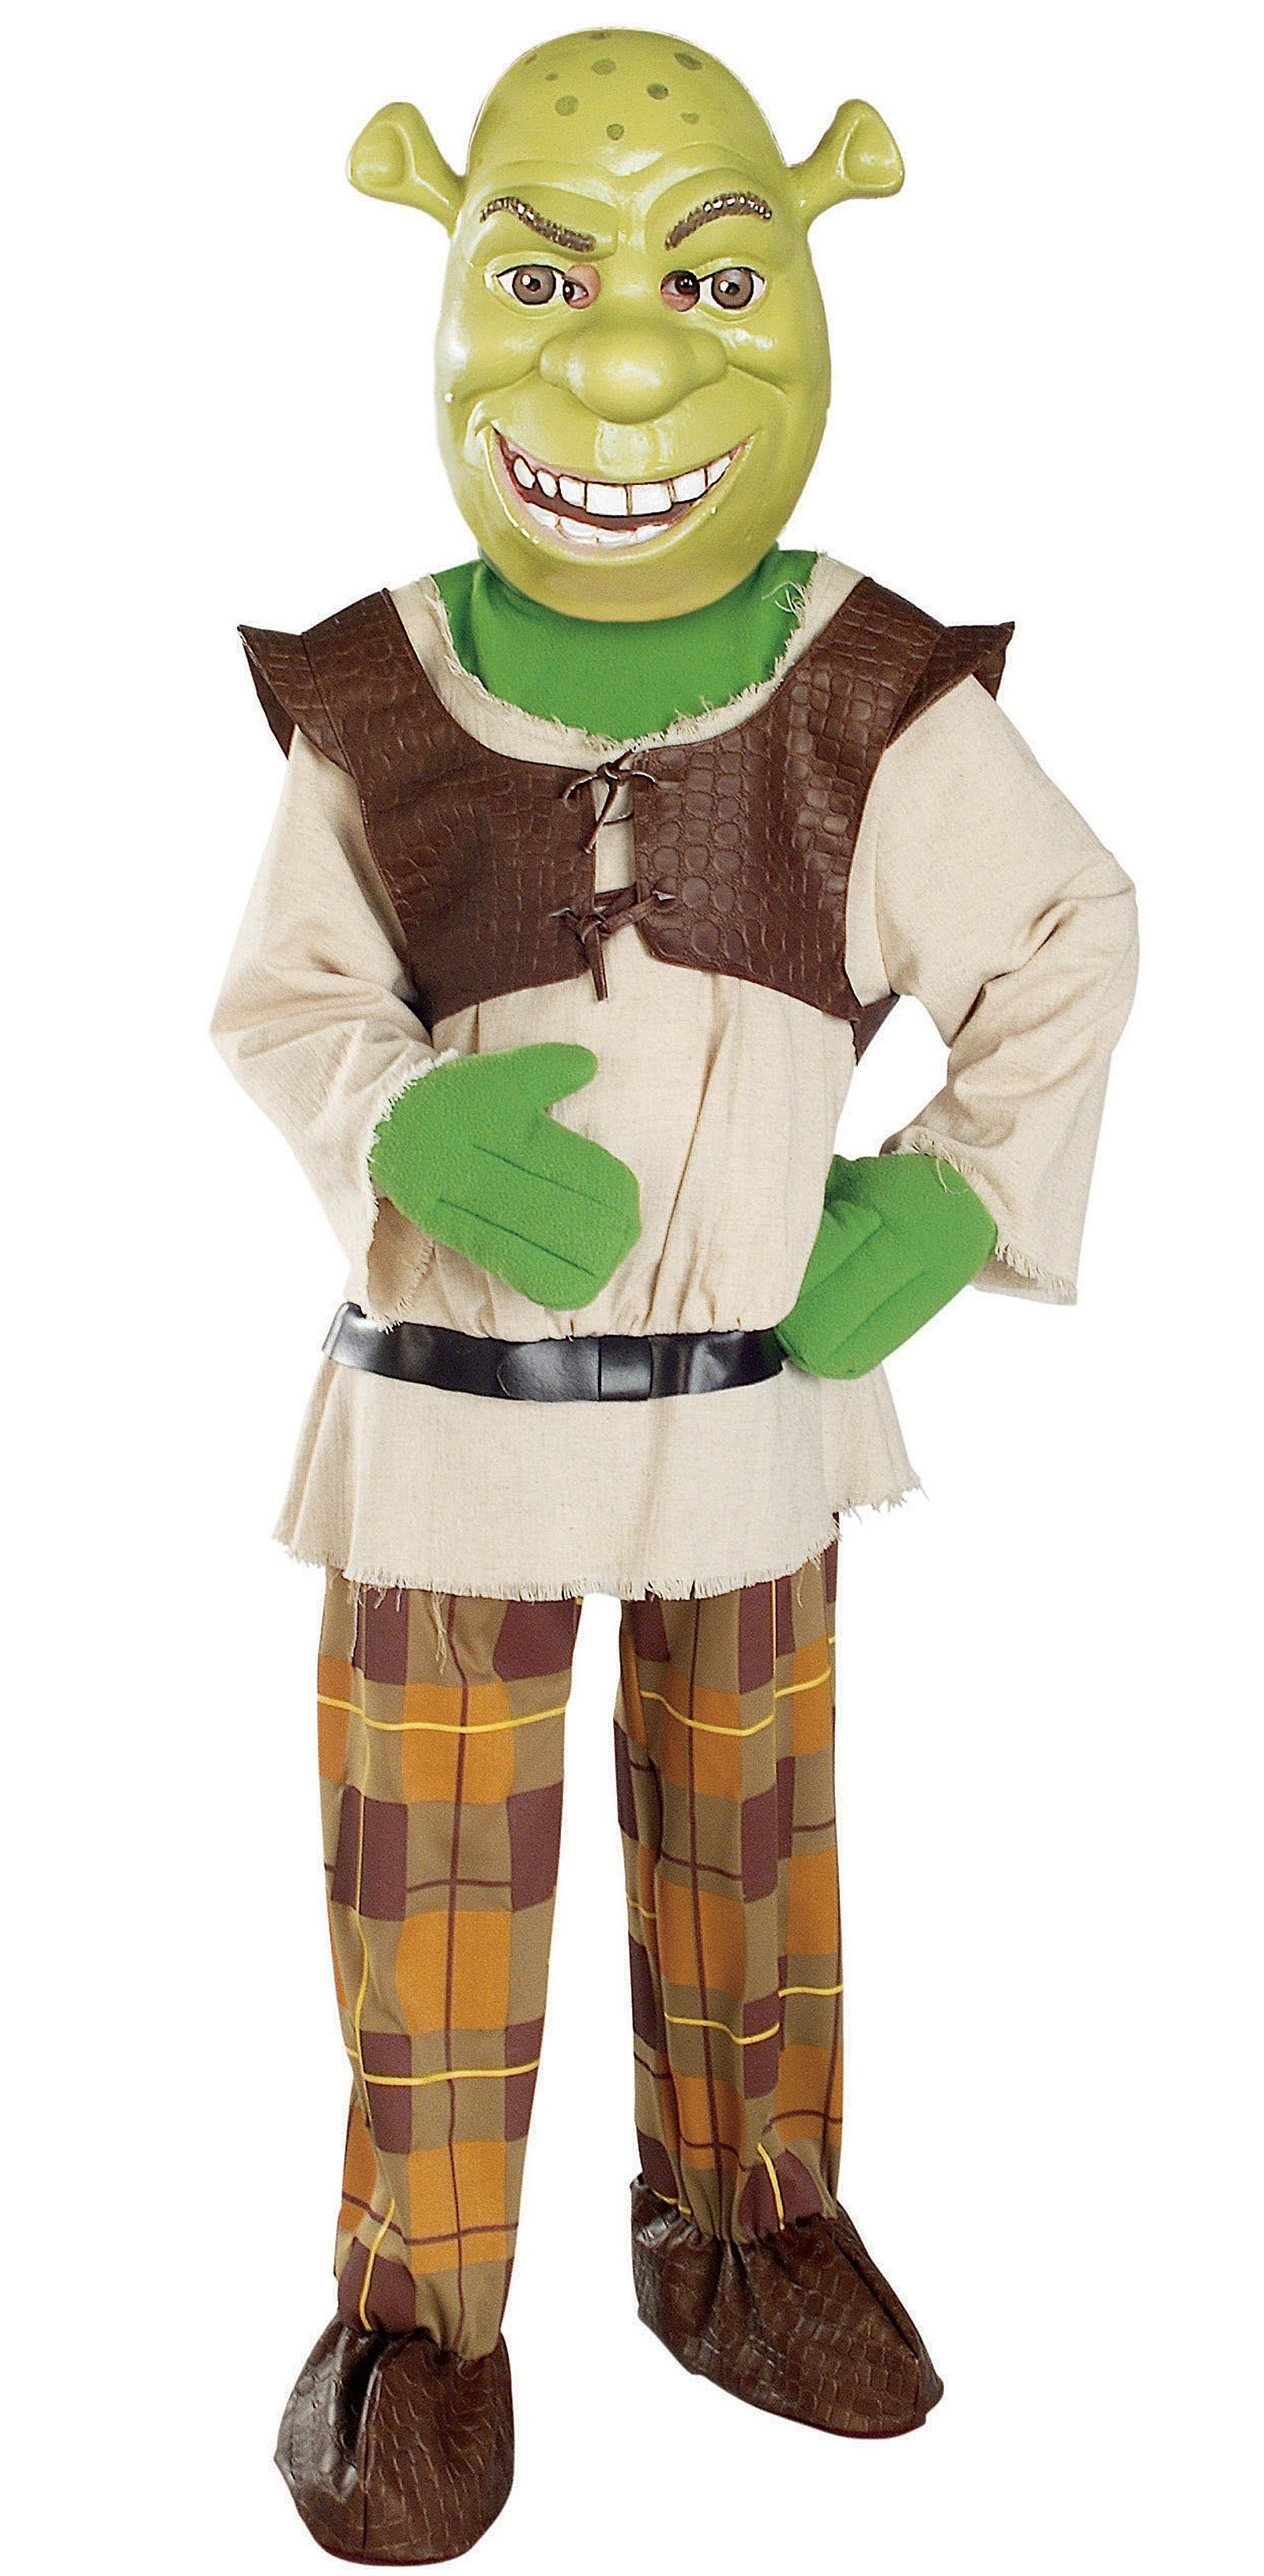 Shrek w/Mask Deluxe Child Costume - Includes Character mask, deluxe jumpsuit with attached tunic, vest, belt and hand and shoe covers. Available in Child sizes: Small (4-6), Medium (8-10), and Large (12-14). This is an officially licensed Shrek 2 costume. Small (4-6).